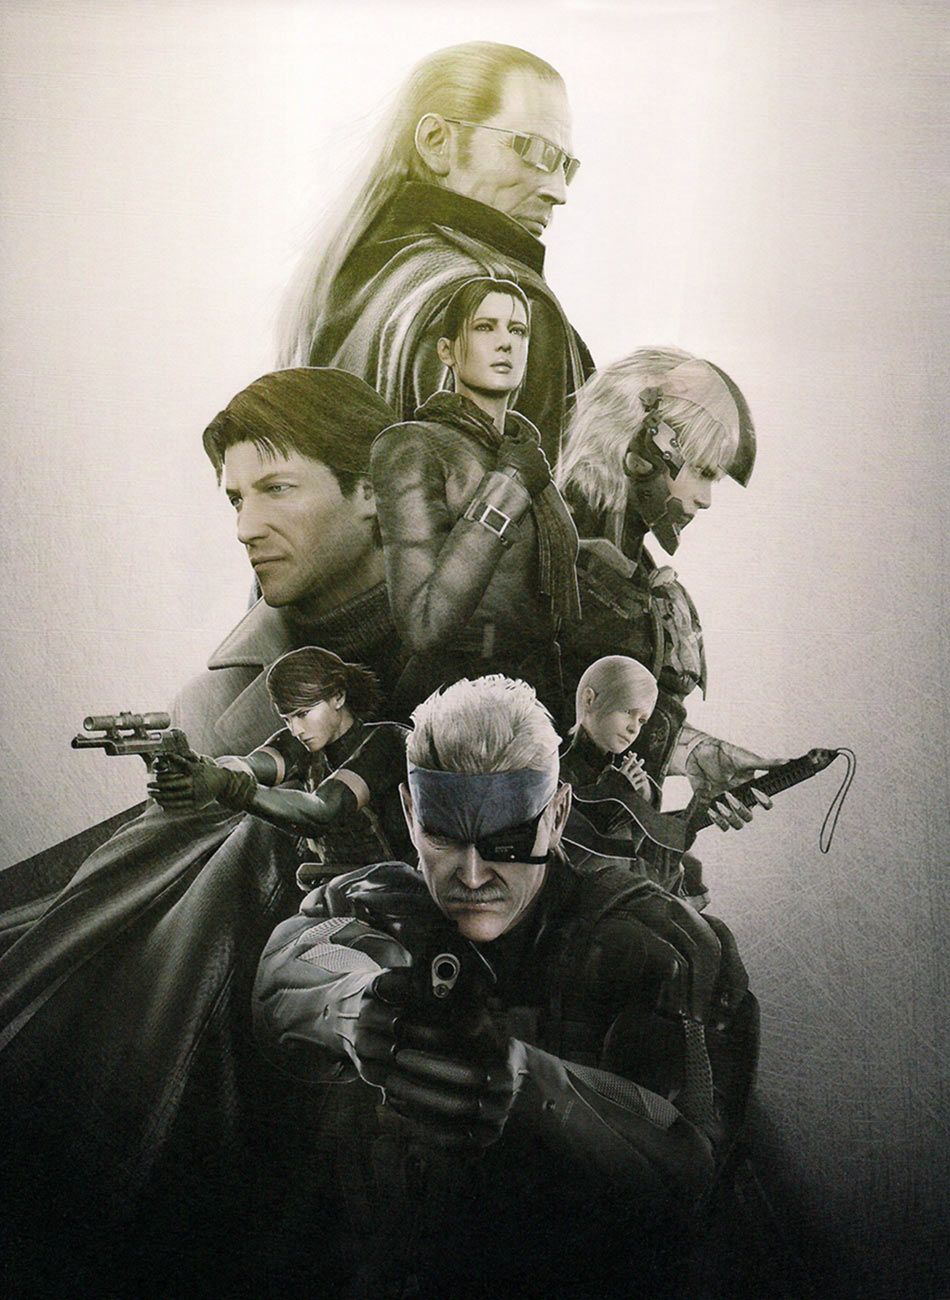 Characters Promo Poster Art From Metal Gear Solid 4 Art Artwork Gaming Videogames Gamer Gameart Metalgears In 2020 Metal Gear Metal Gear Solid Metal Gear Rising